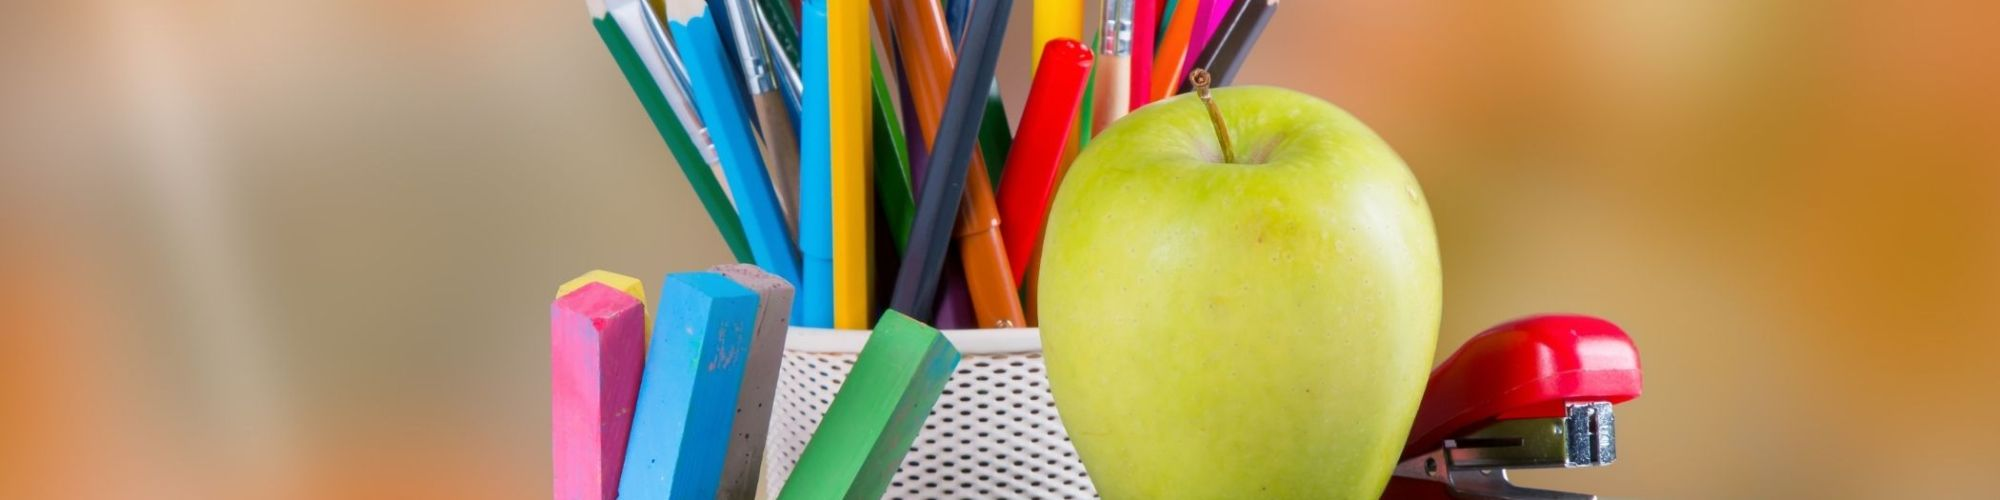 Colored Pencils and an apple